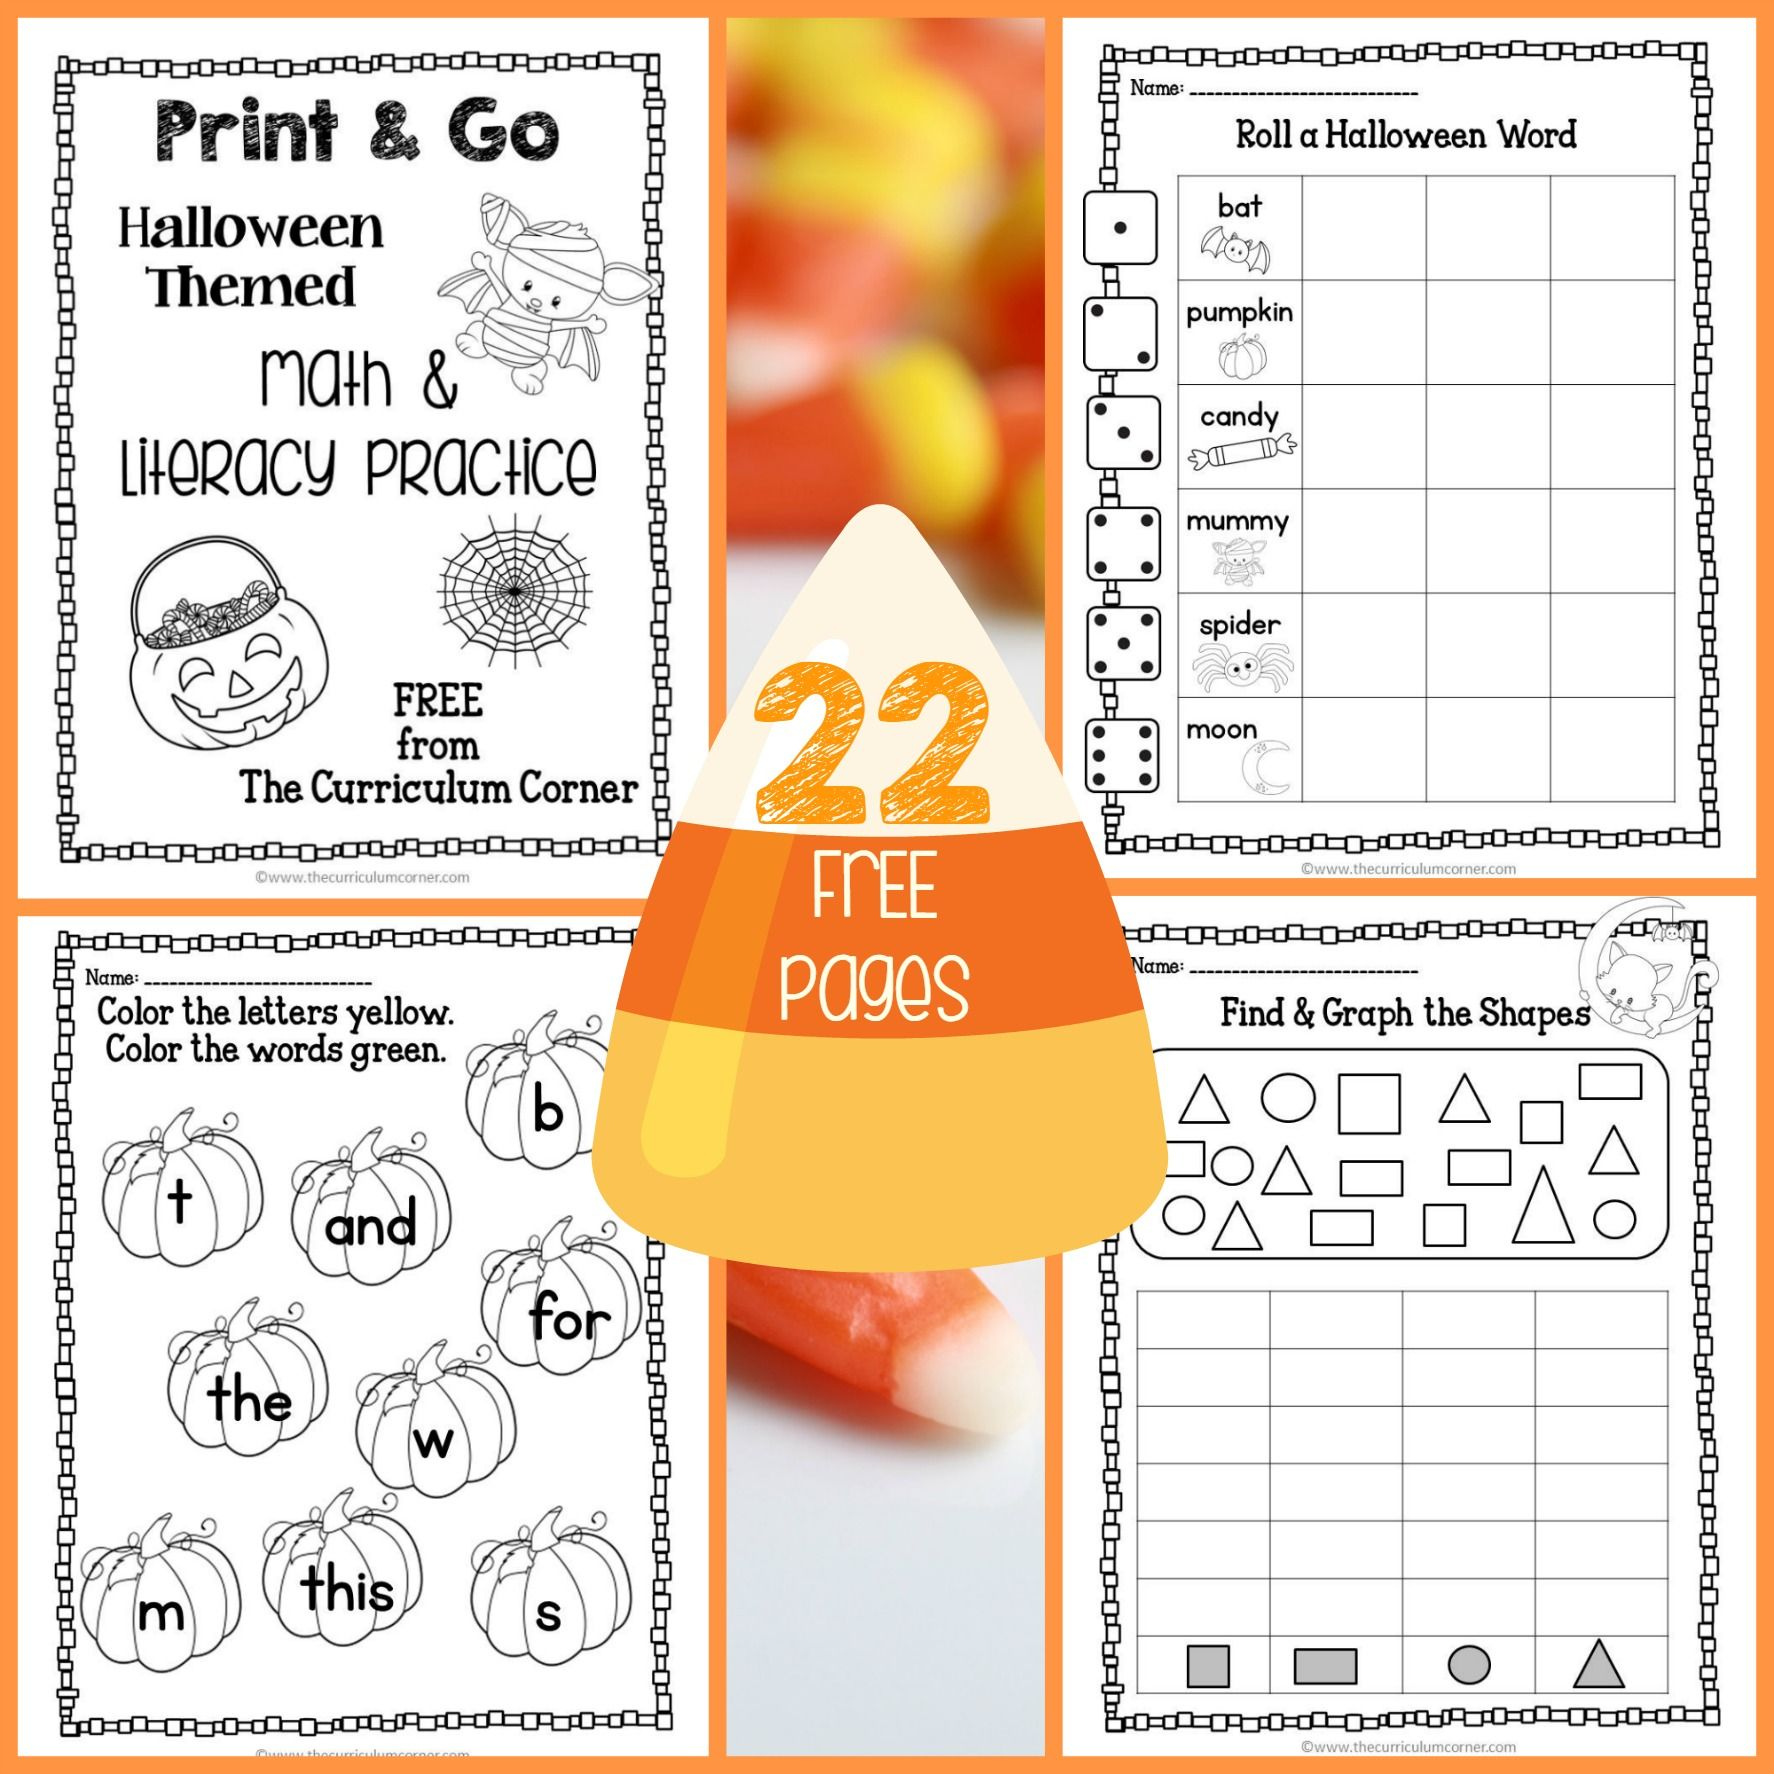 Use These Halloween Practice Pages For Quick Review Of